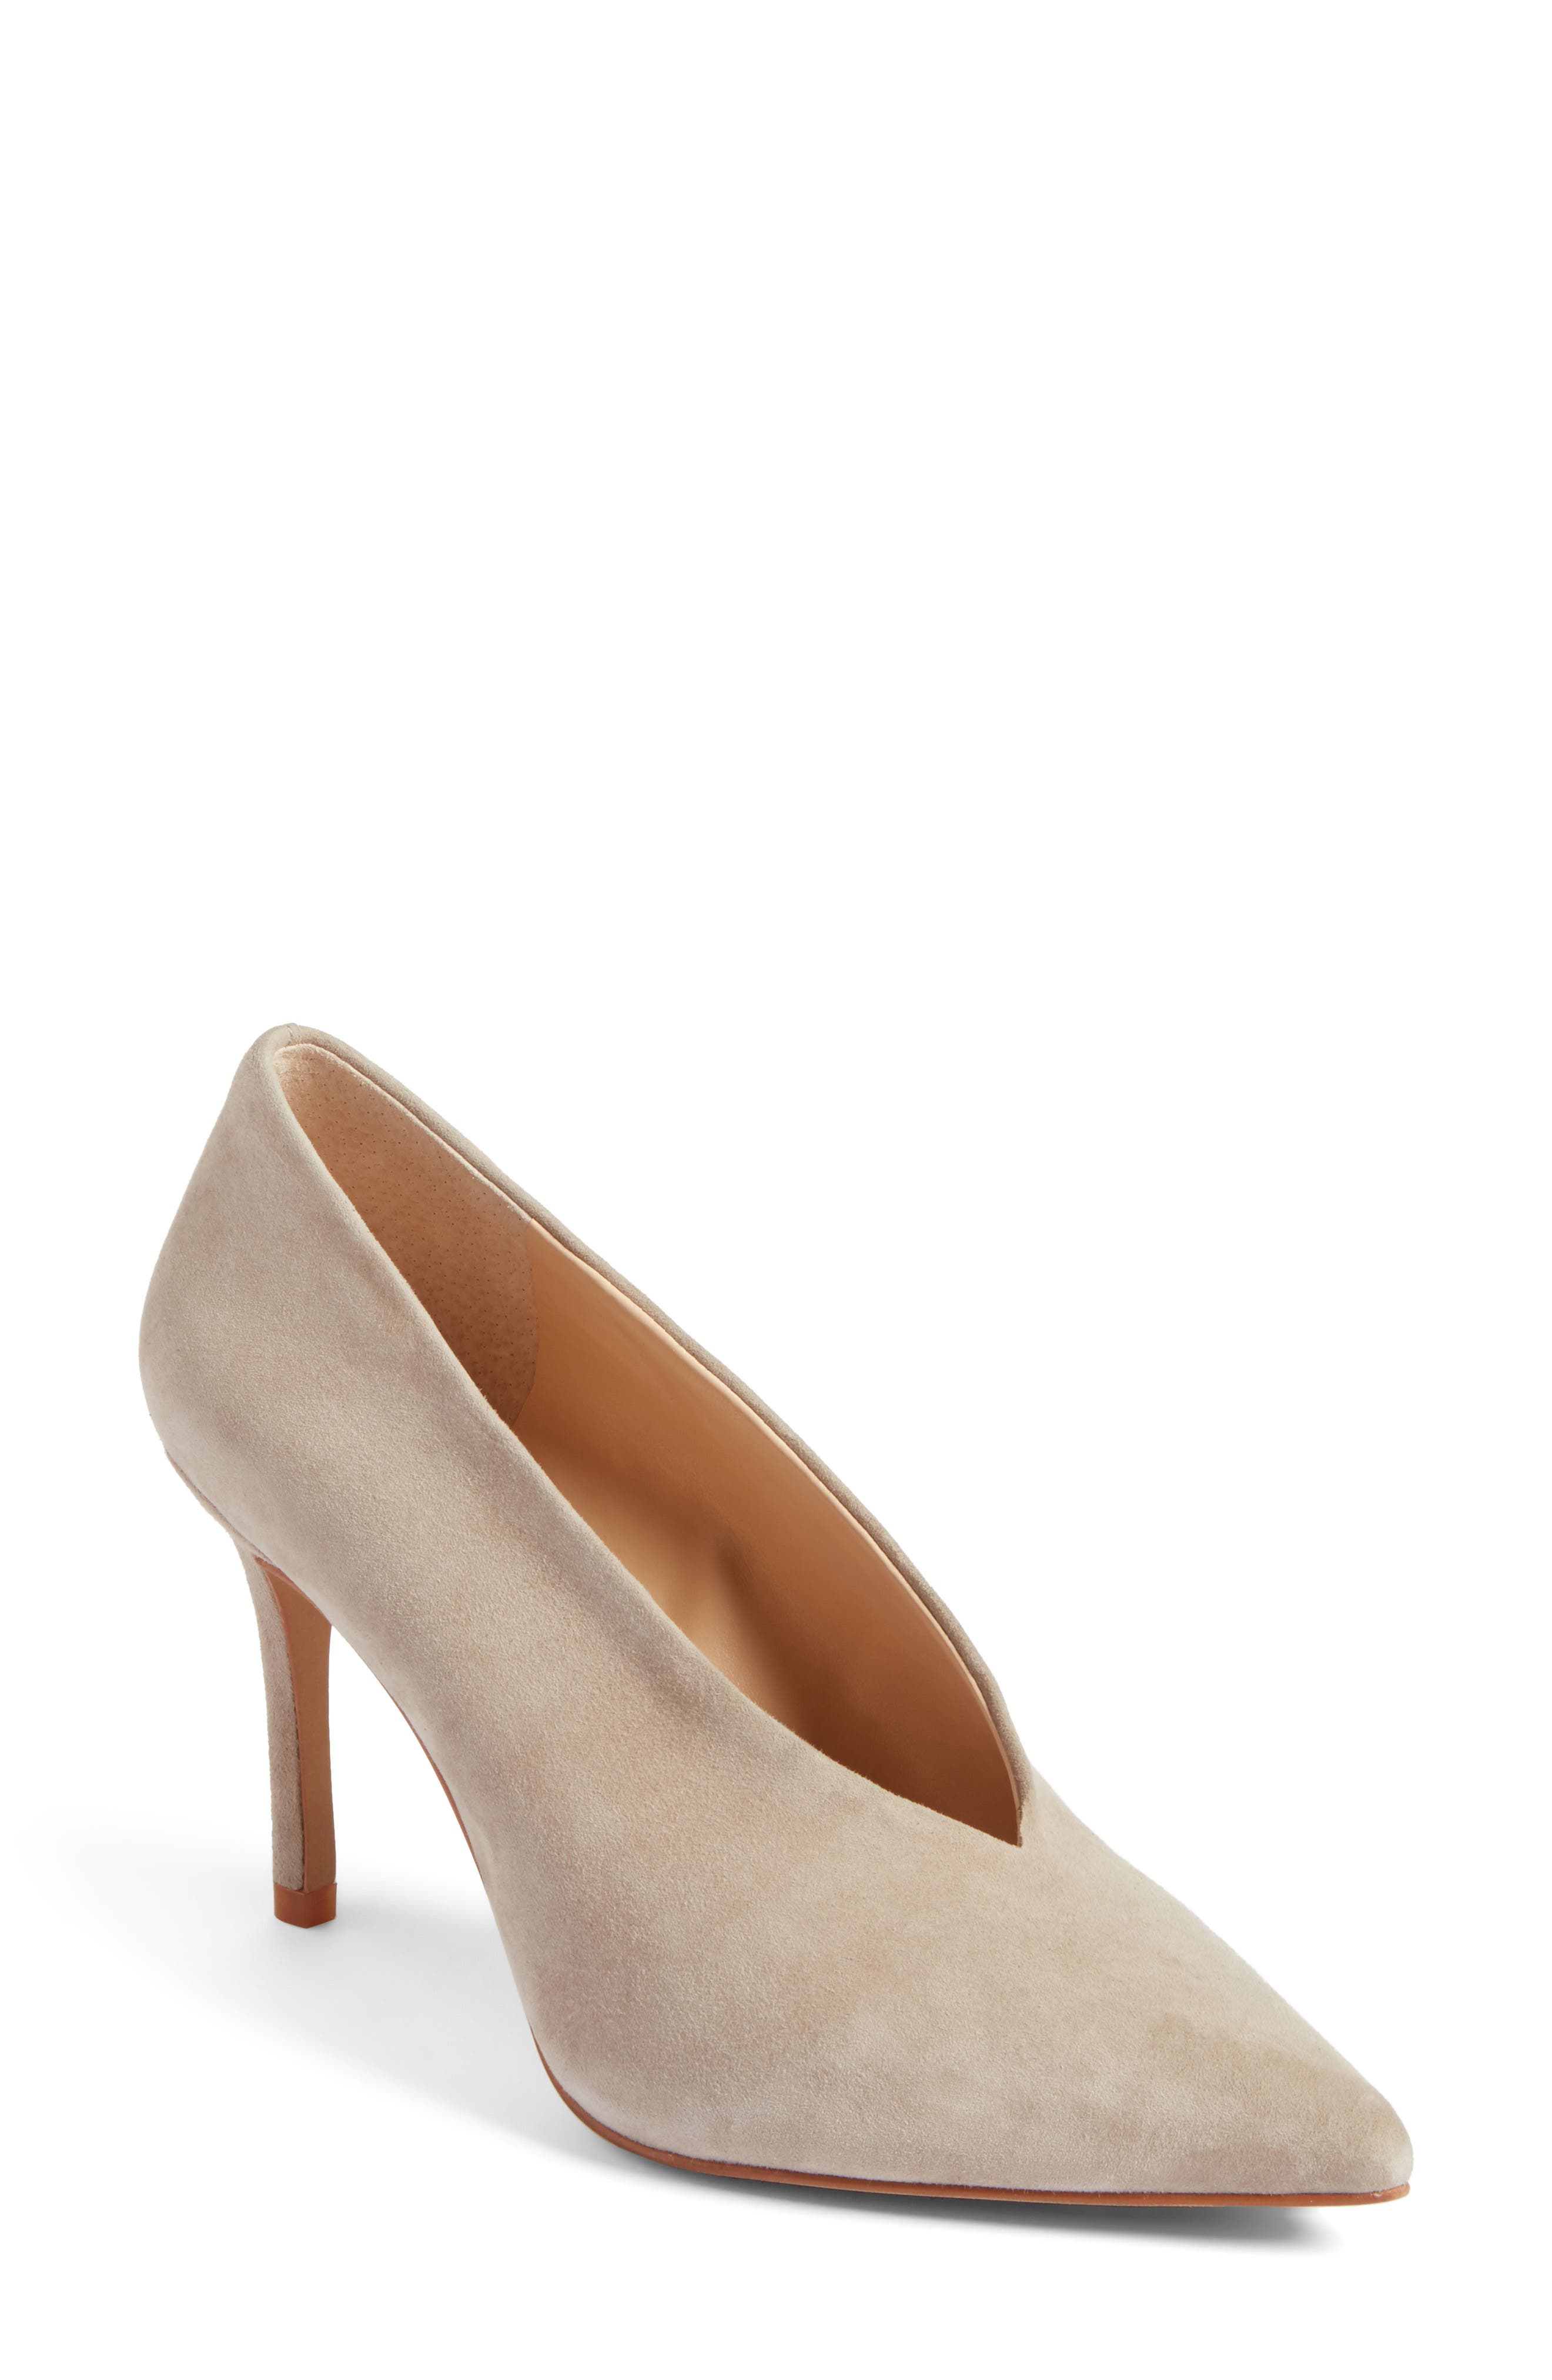 Alternate Image 1 Selected - Vince Camuto Ankia Suede Pump (Women) (Nordstrom Exclusive)